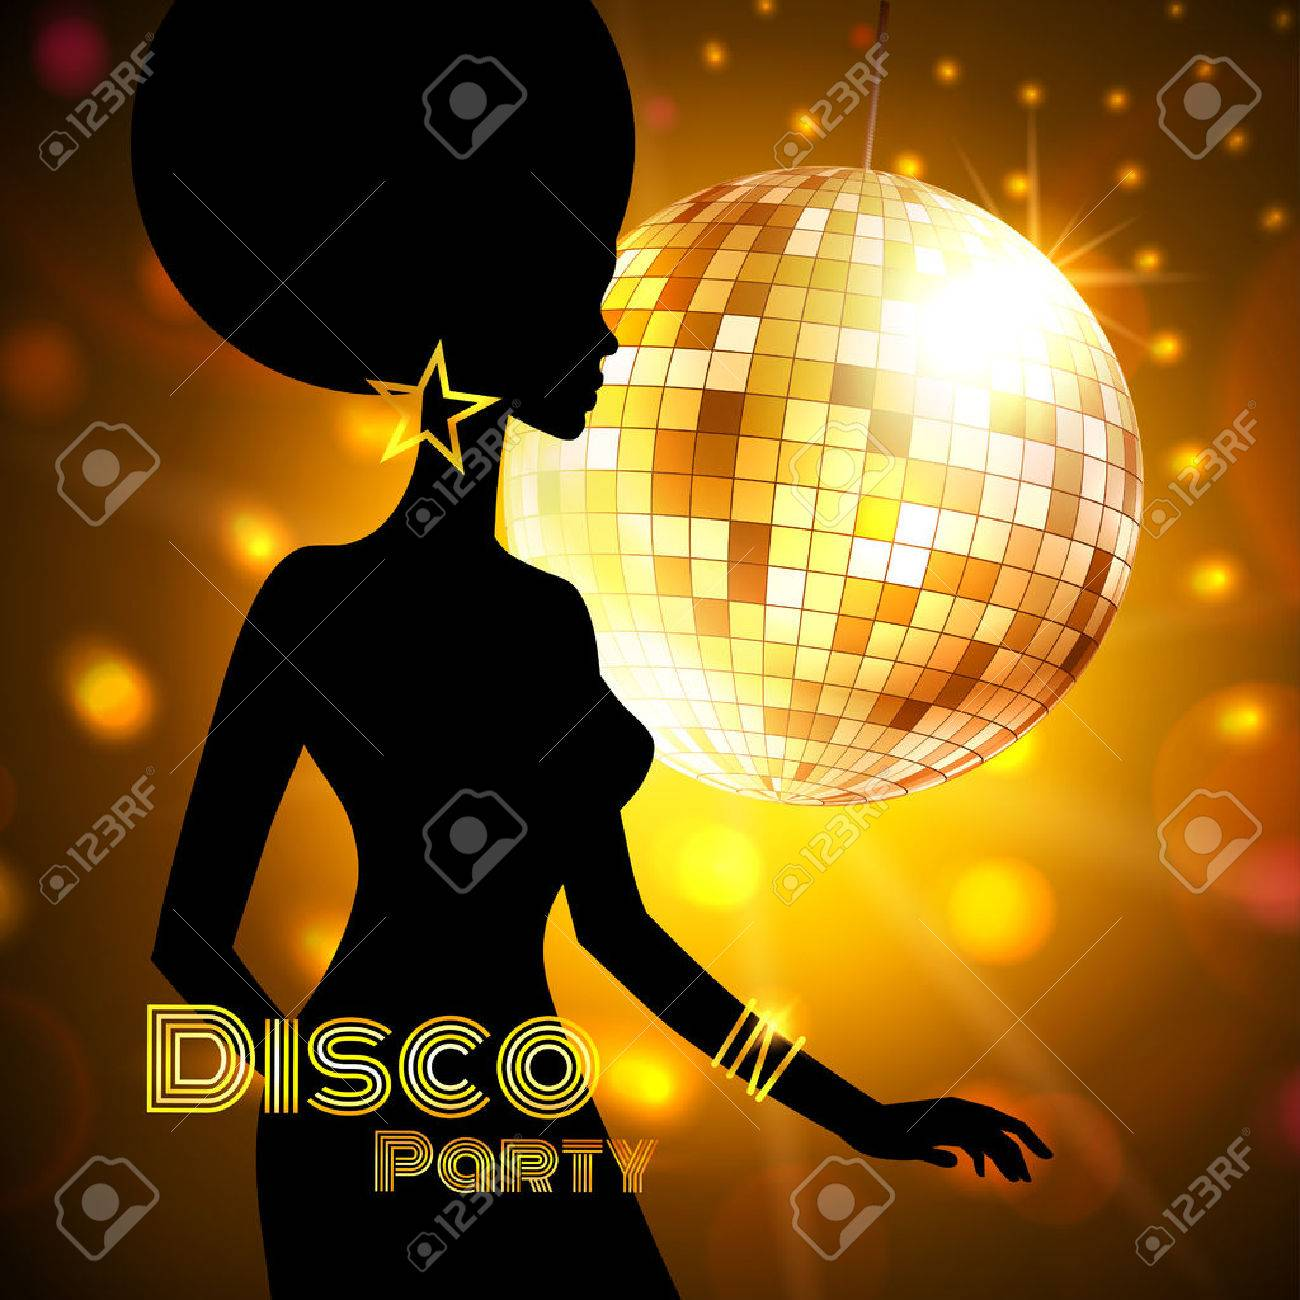 Disco Party Invitation Template With Silhouette Of A Girl Royalty - Disco party invites templates free